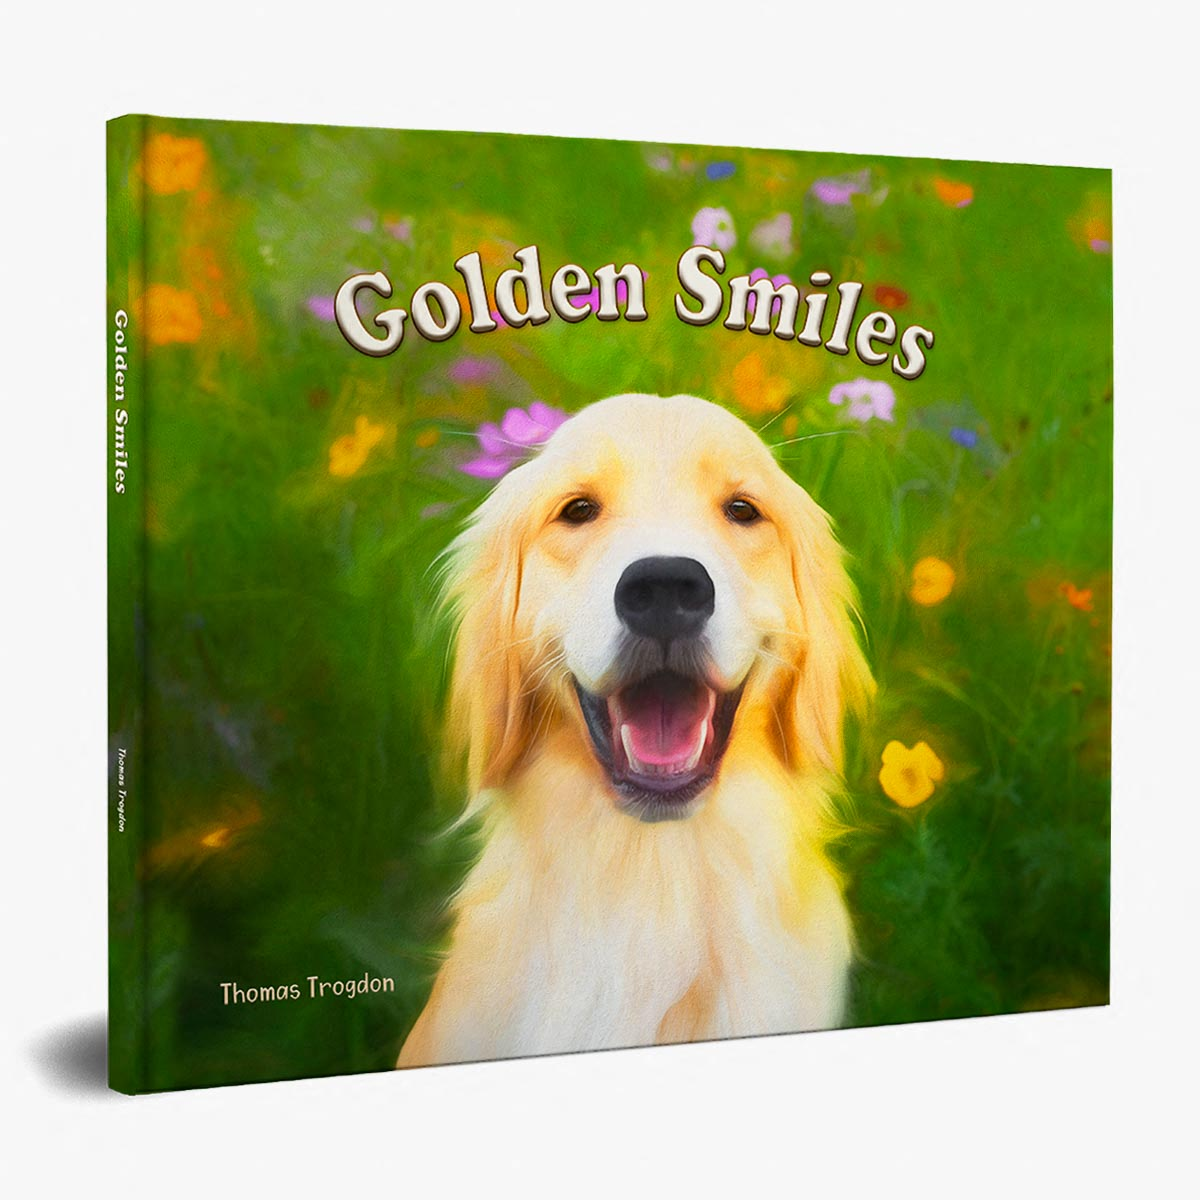 Golden Smiles Book Cover for Featured Image